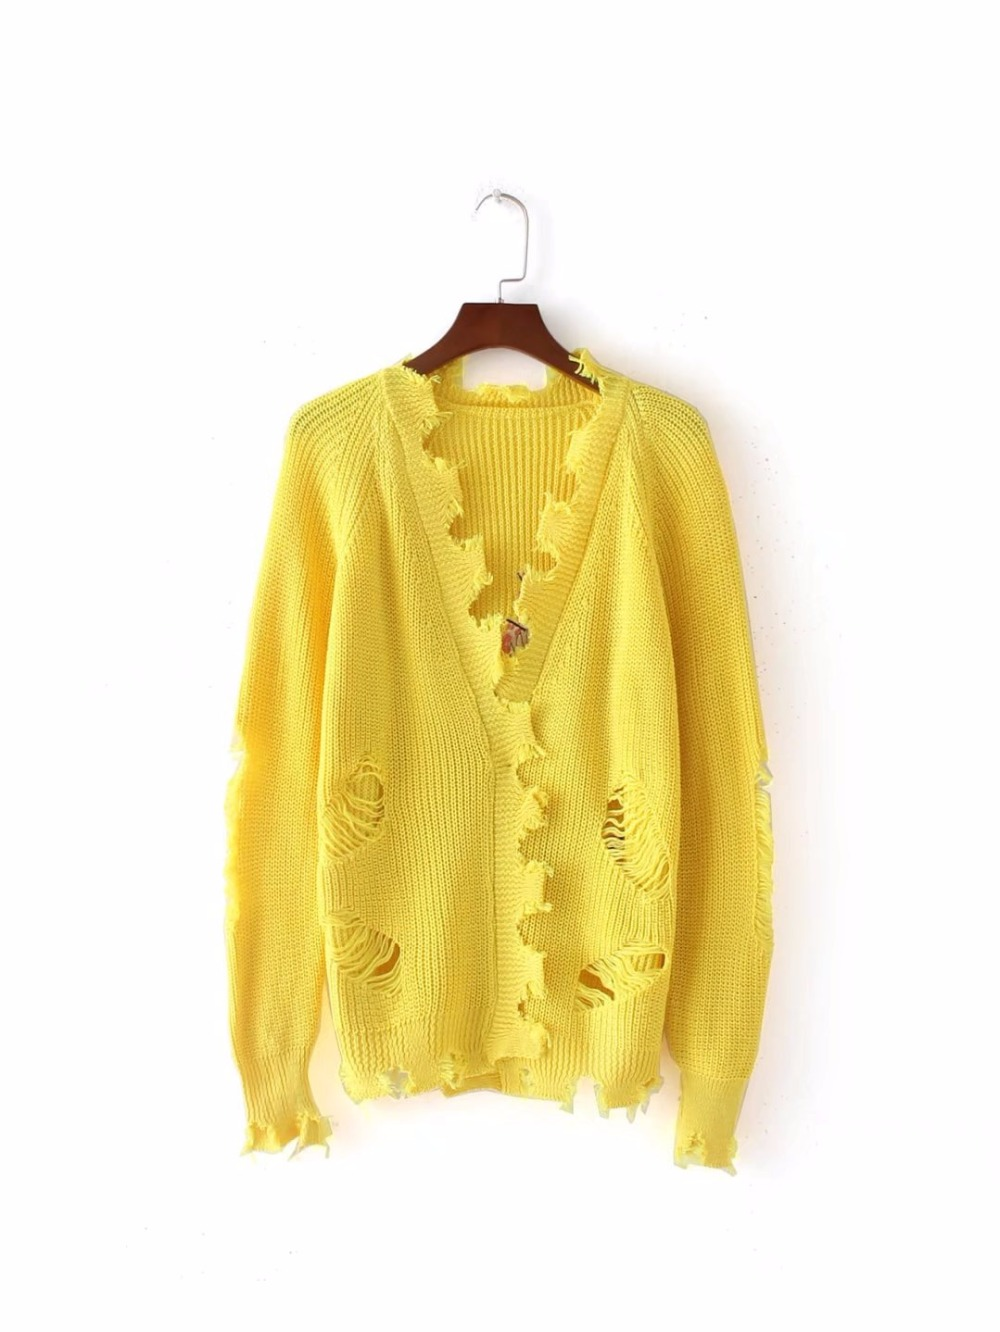 2017 New Arrive Embroidery Cardigans Sweaters Women Fashion Yellow ...